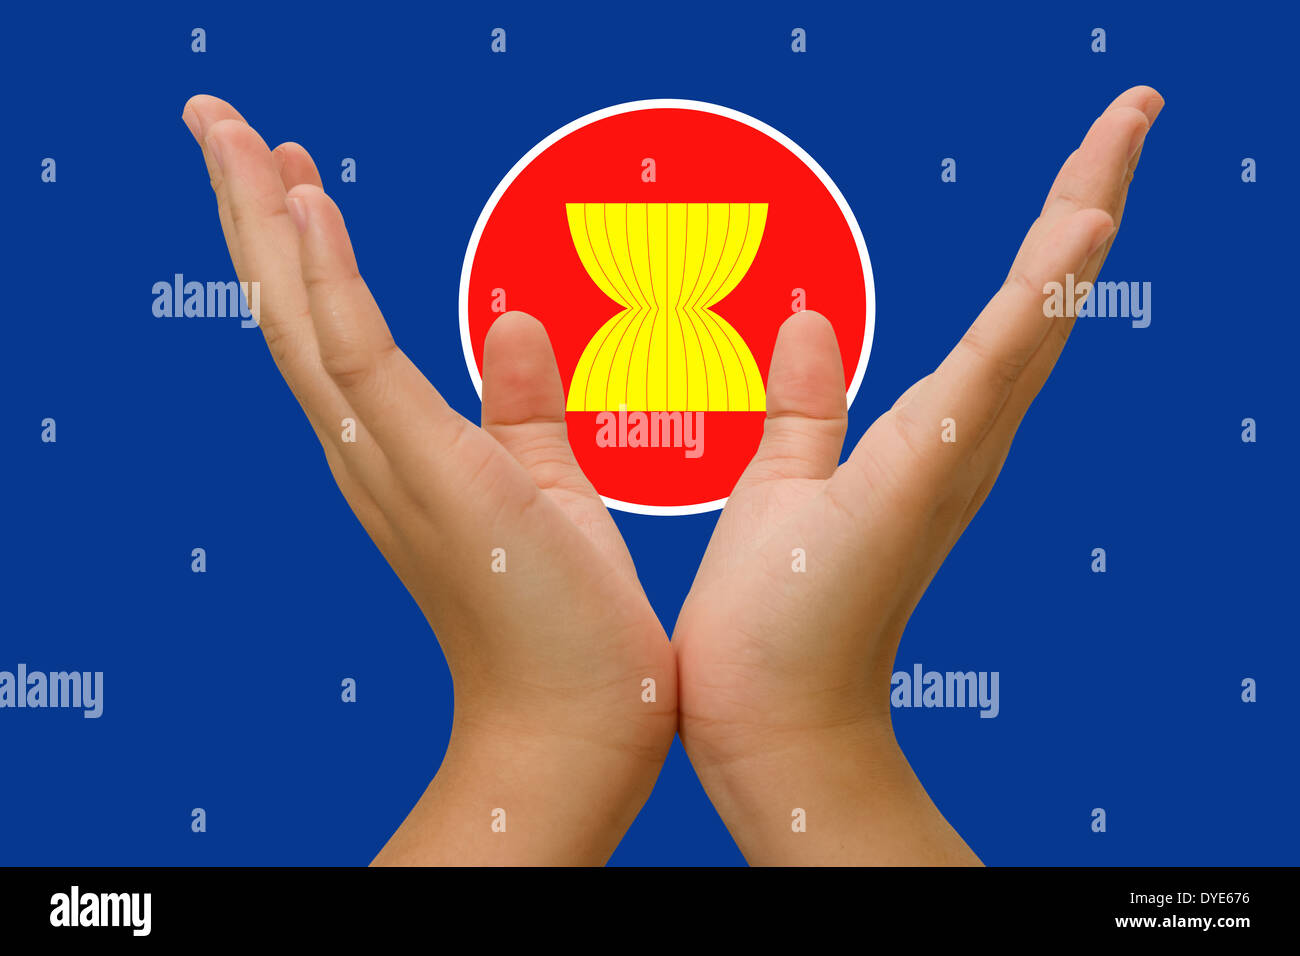 Open hands holding icon of Asean Economic Community - Stock Image